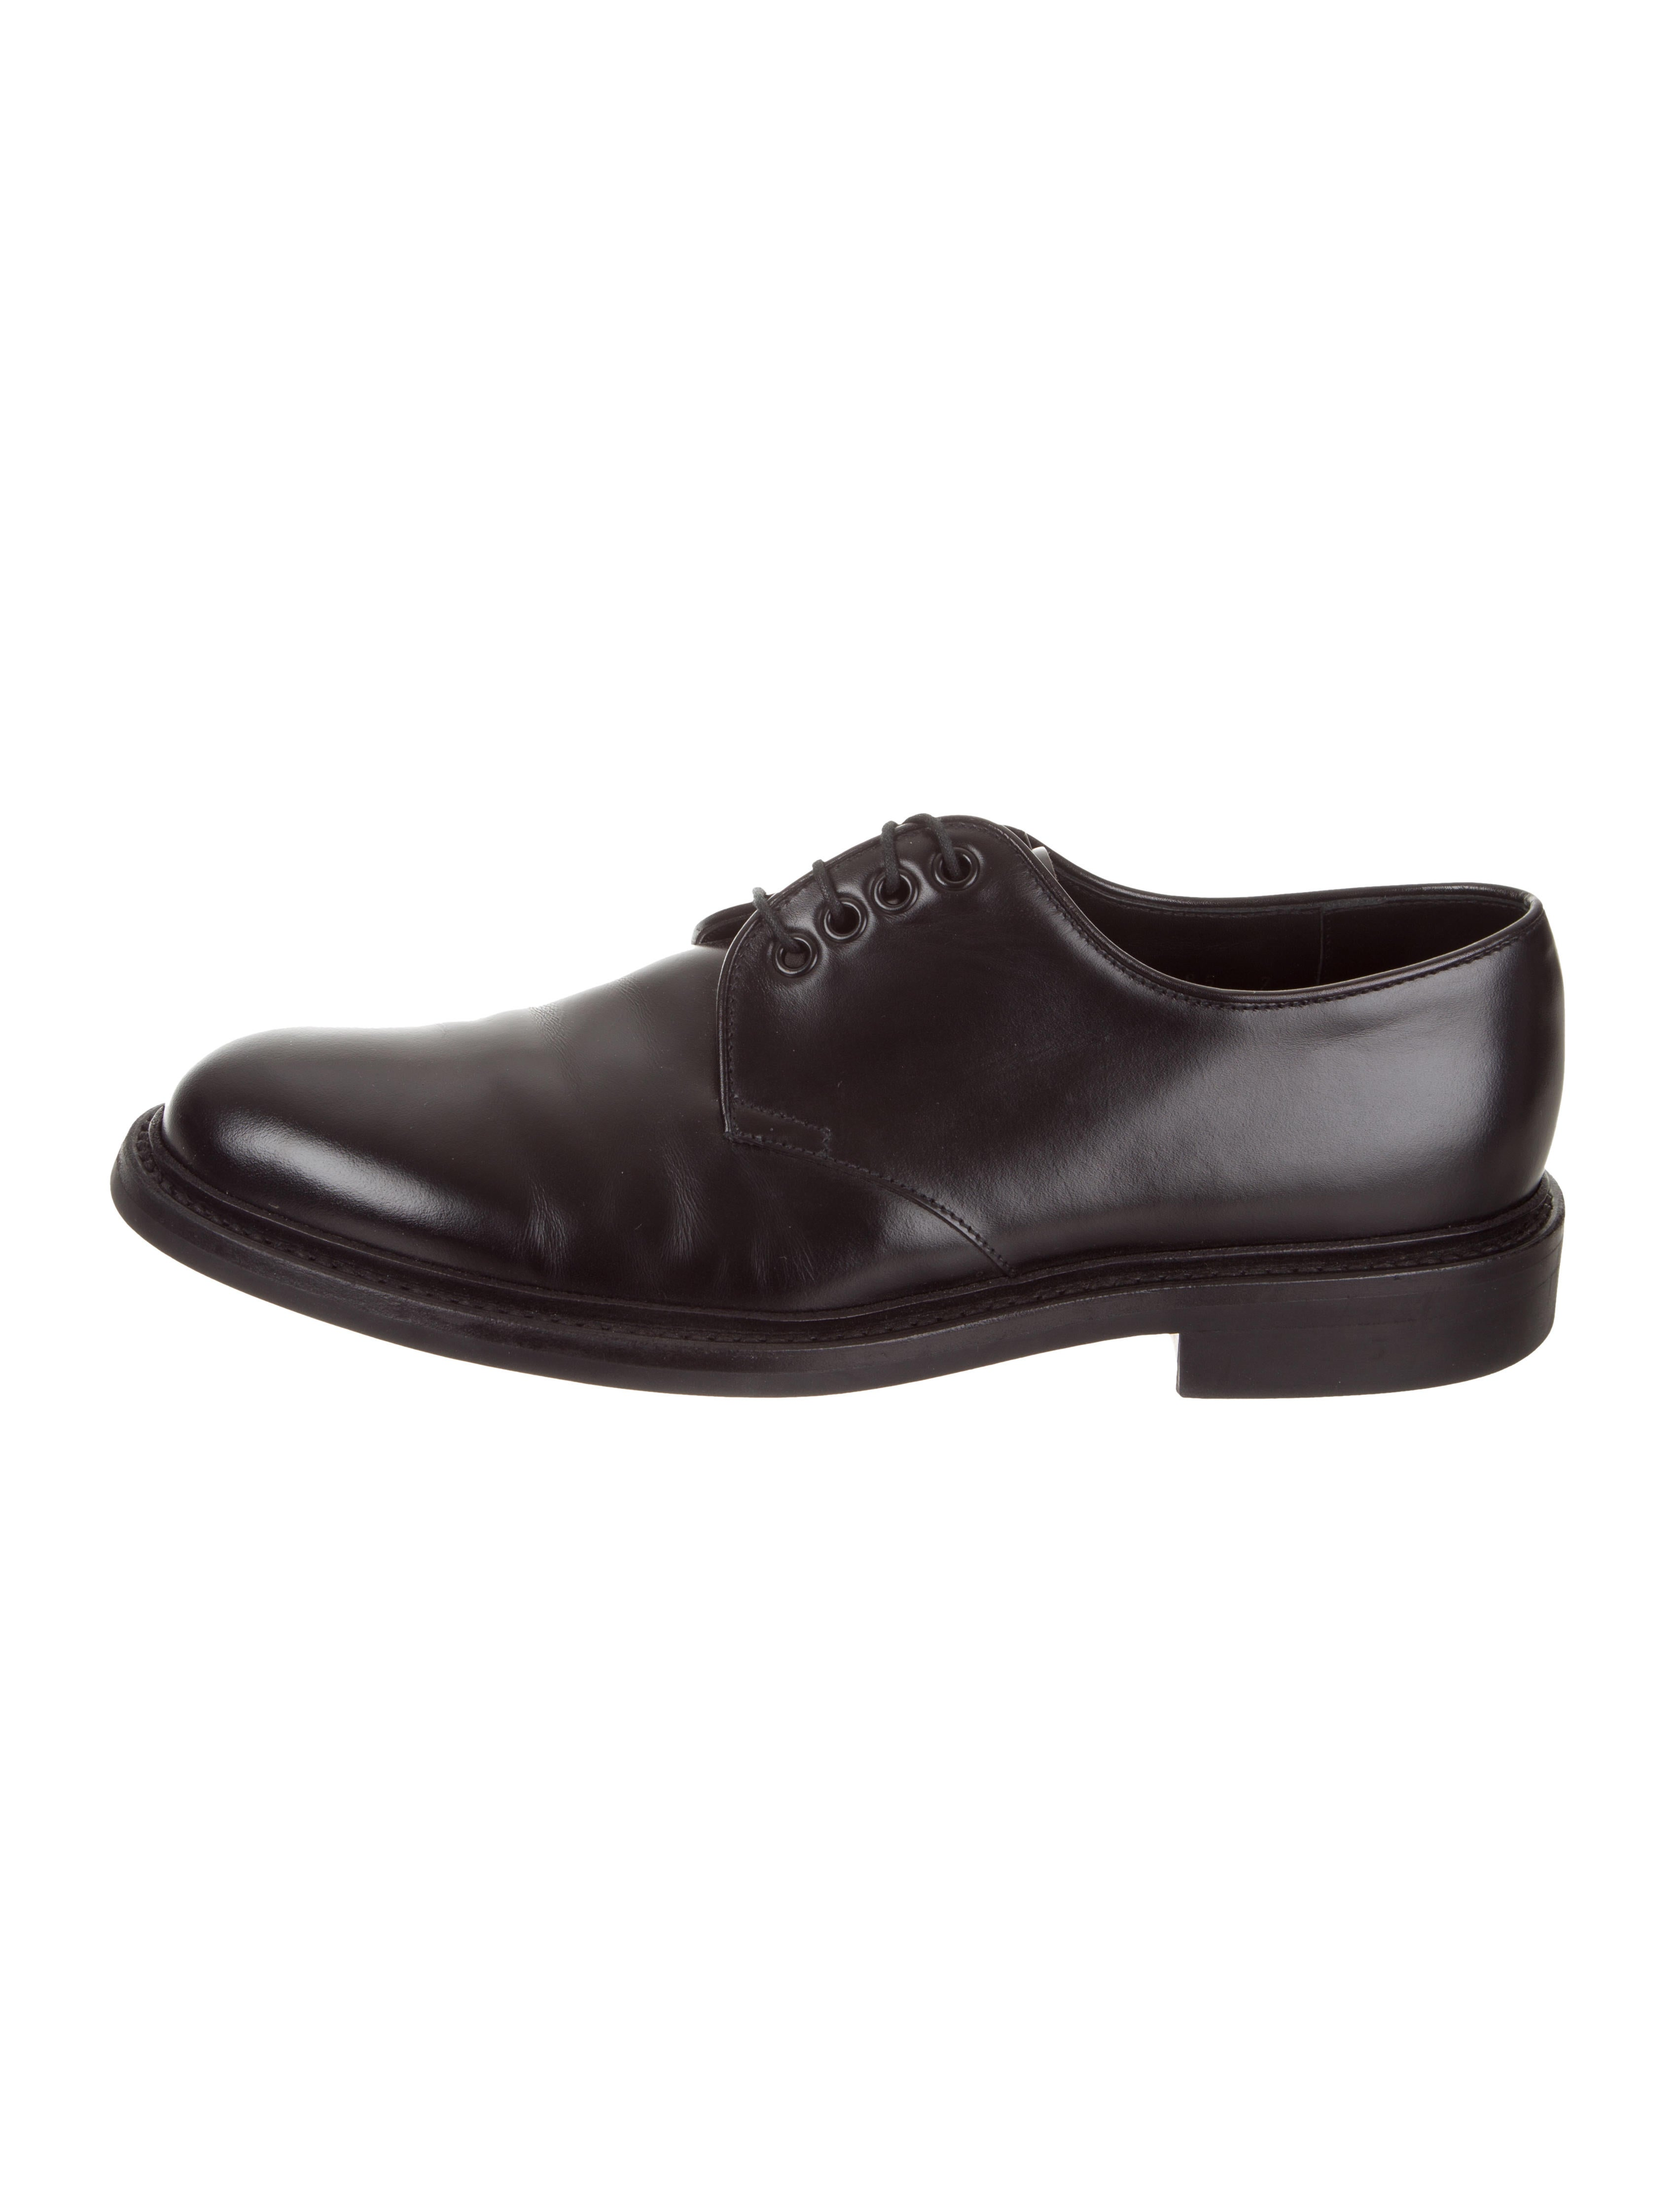 Prada Leather Lace Up Oxfords Shoes Pra275462 The Realreal